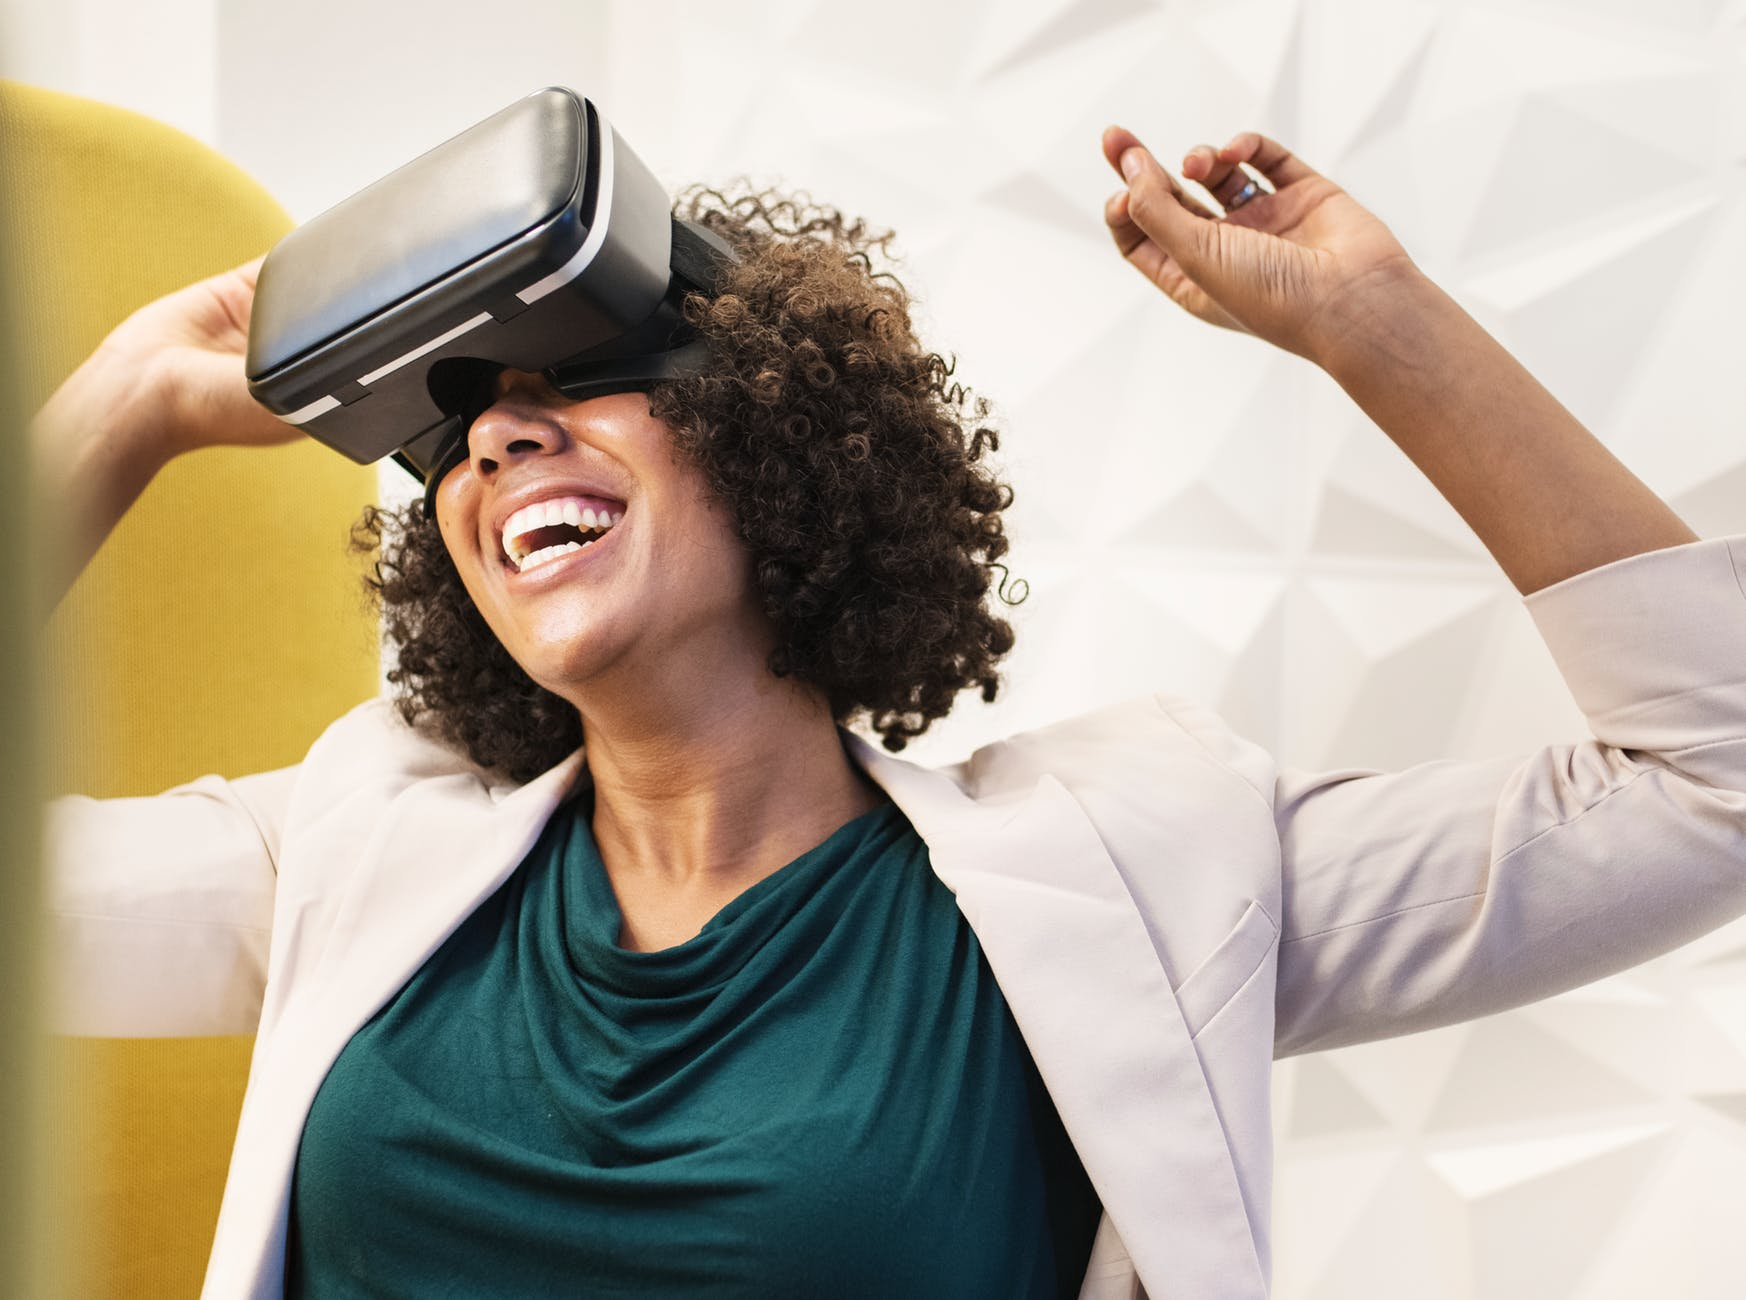 Image of a person wearing a VR headset, illustrating UX in financial marketing